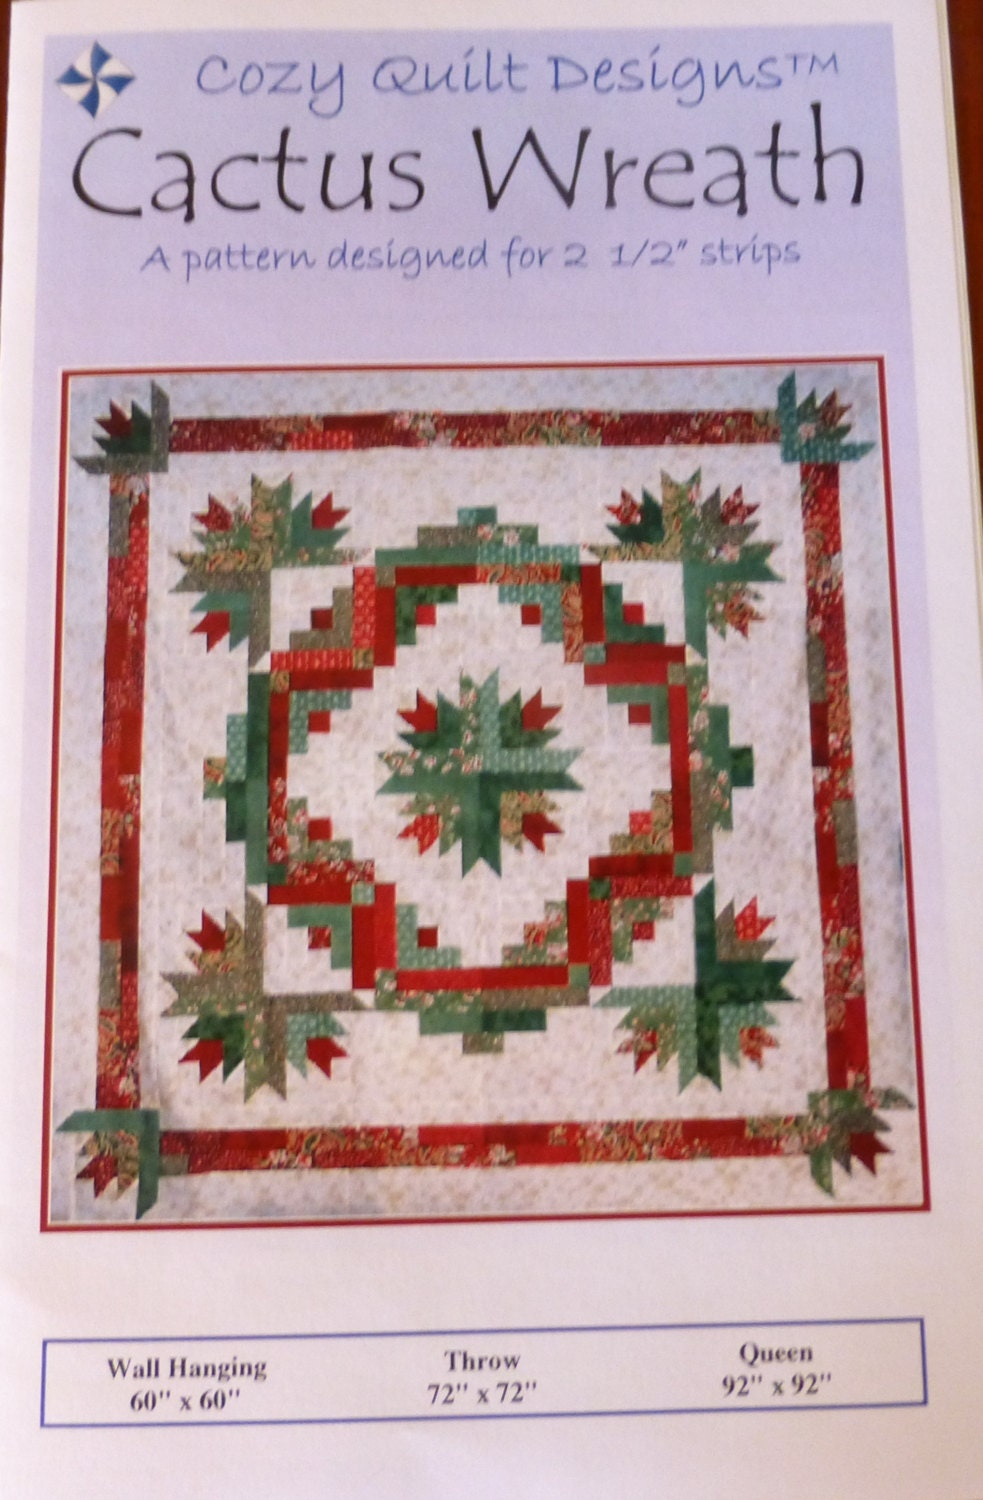 Cactus Wreath Pattern for Strips from Cozy Quilt Designs PT152 : cozy quilt designs - Adamdwight.com